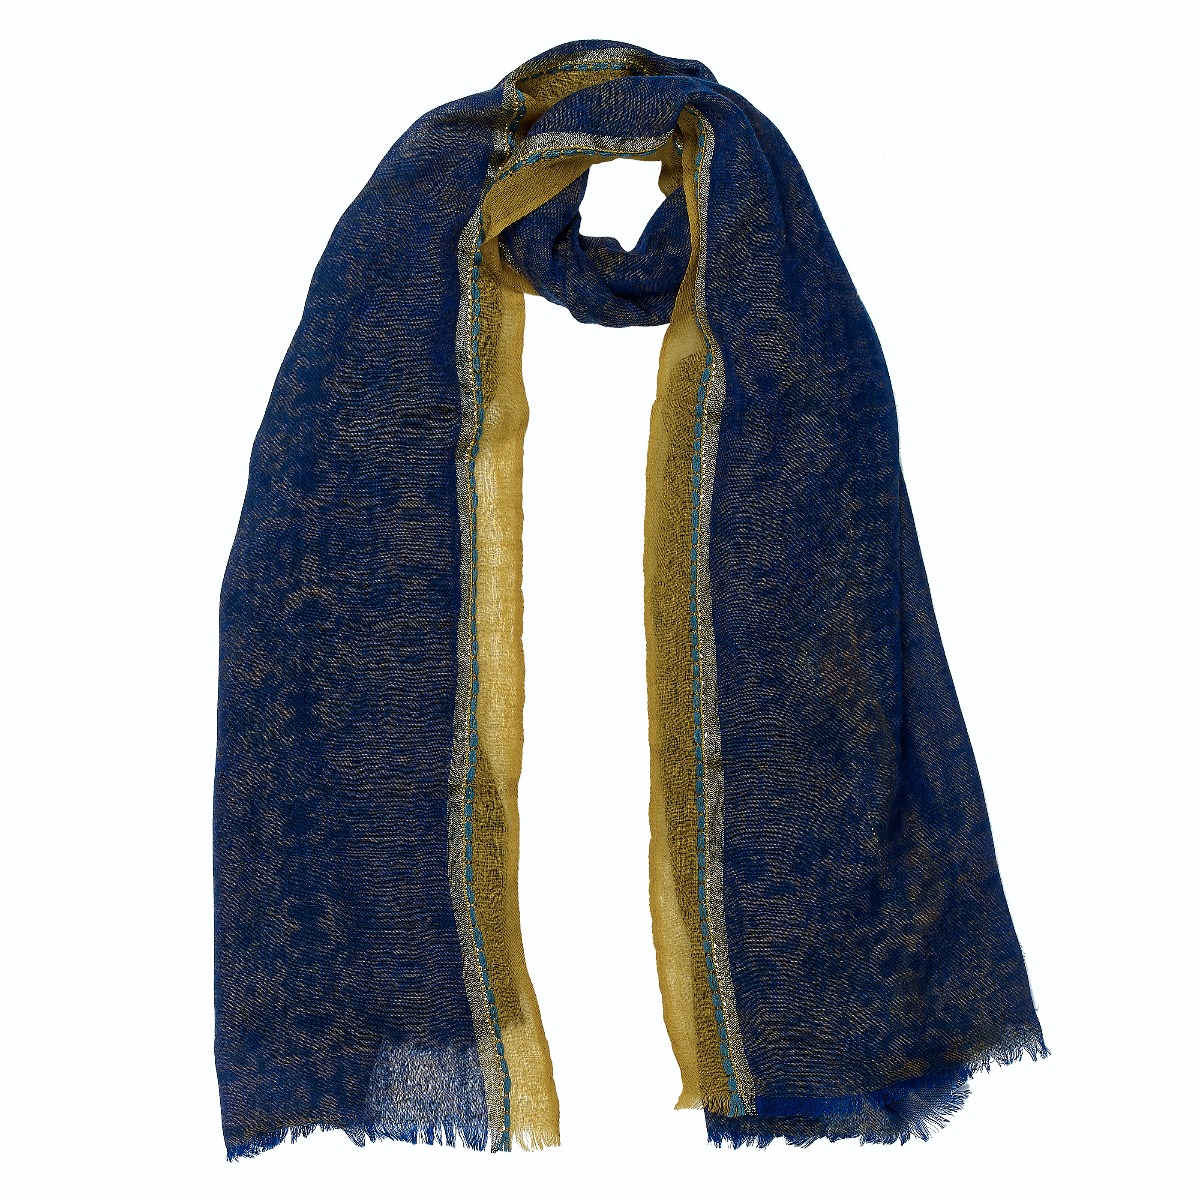 Blue and gold wool scarf